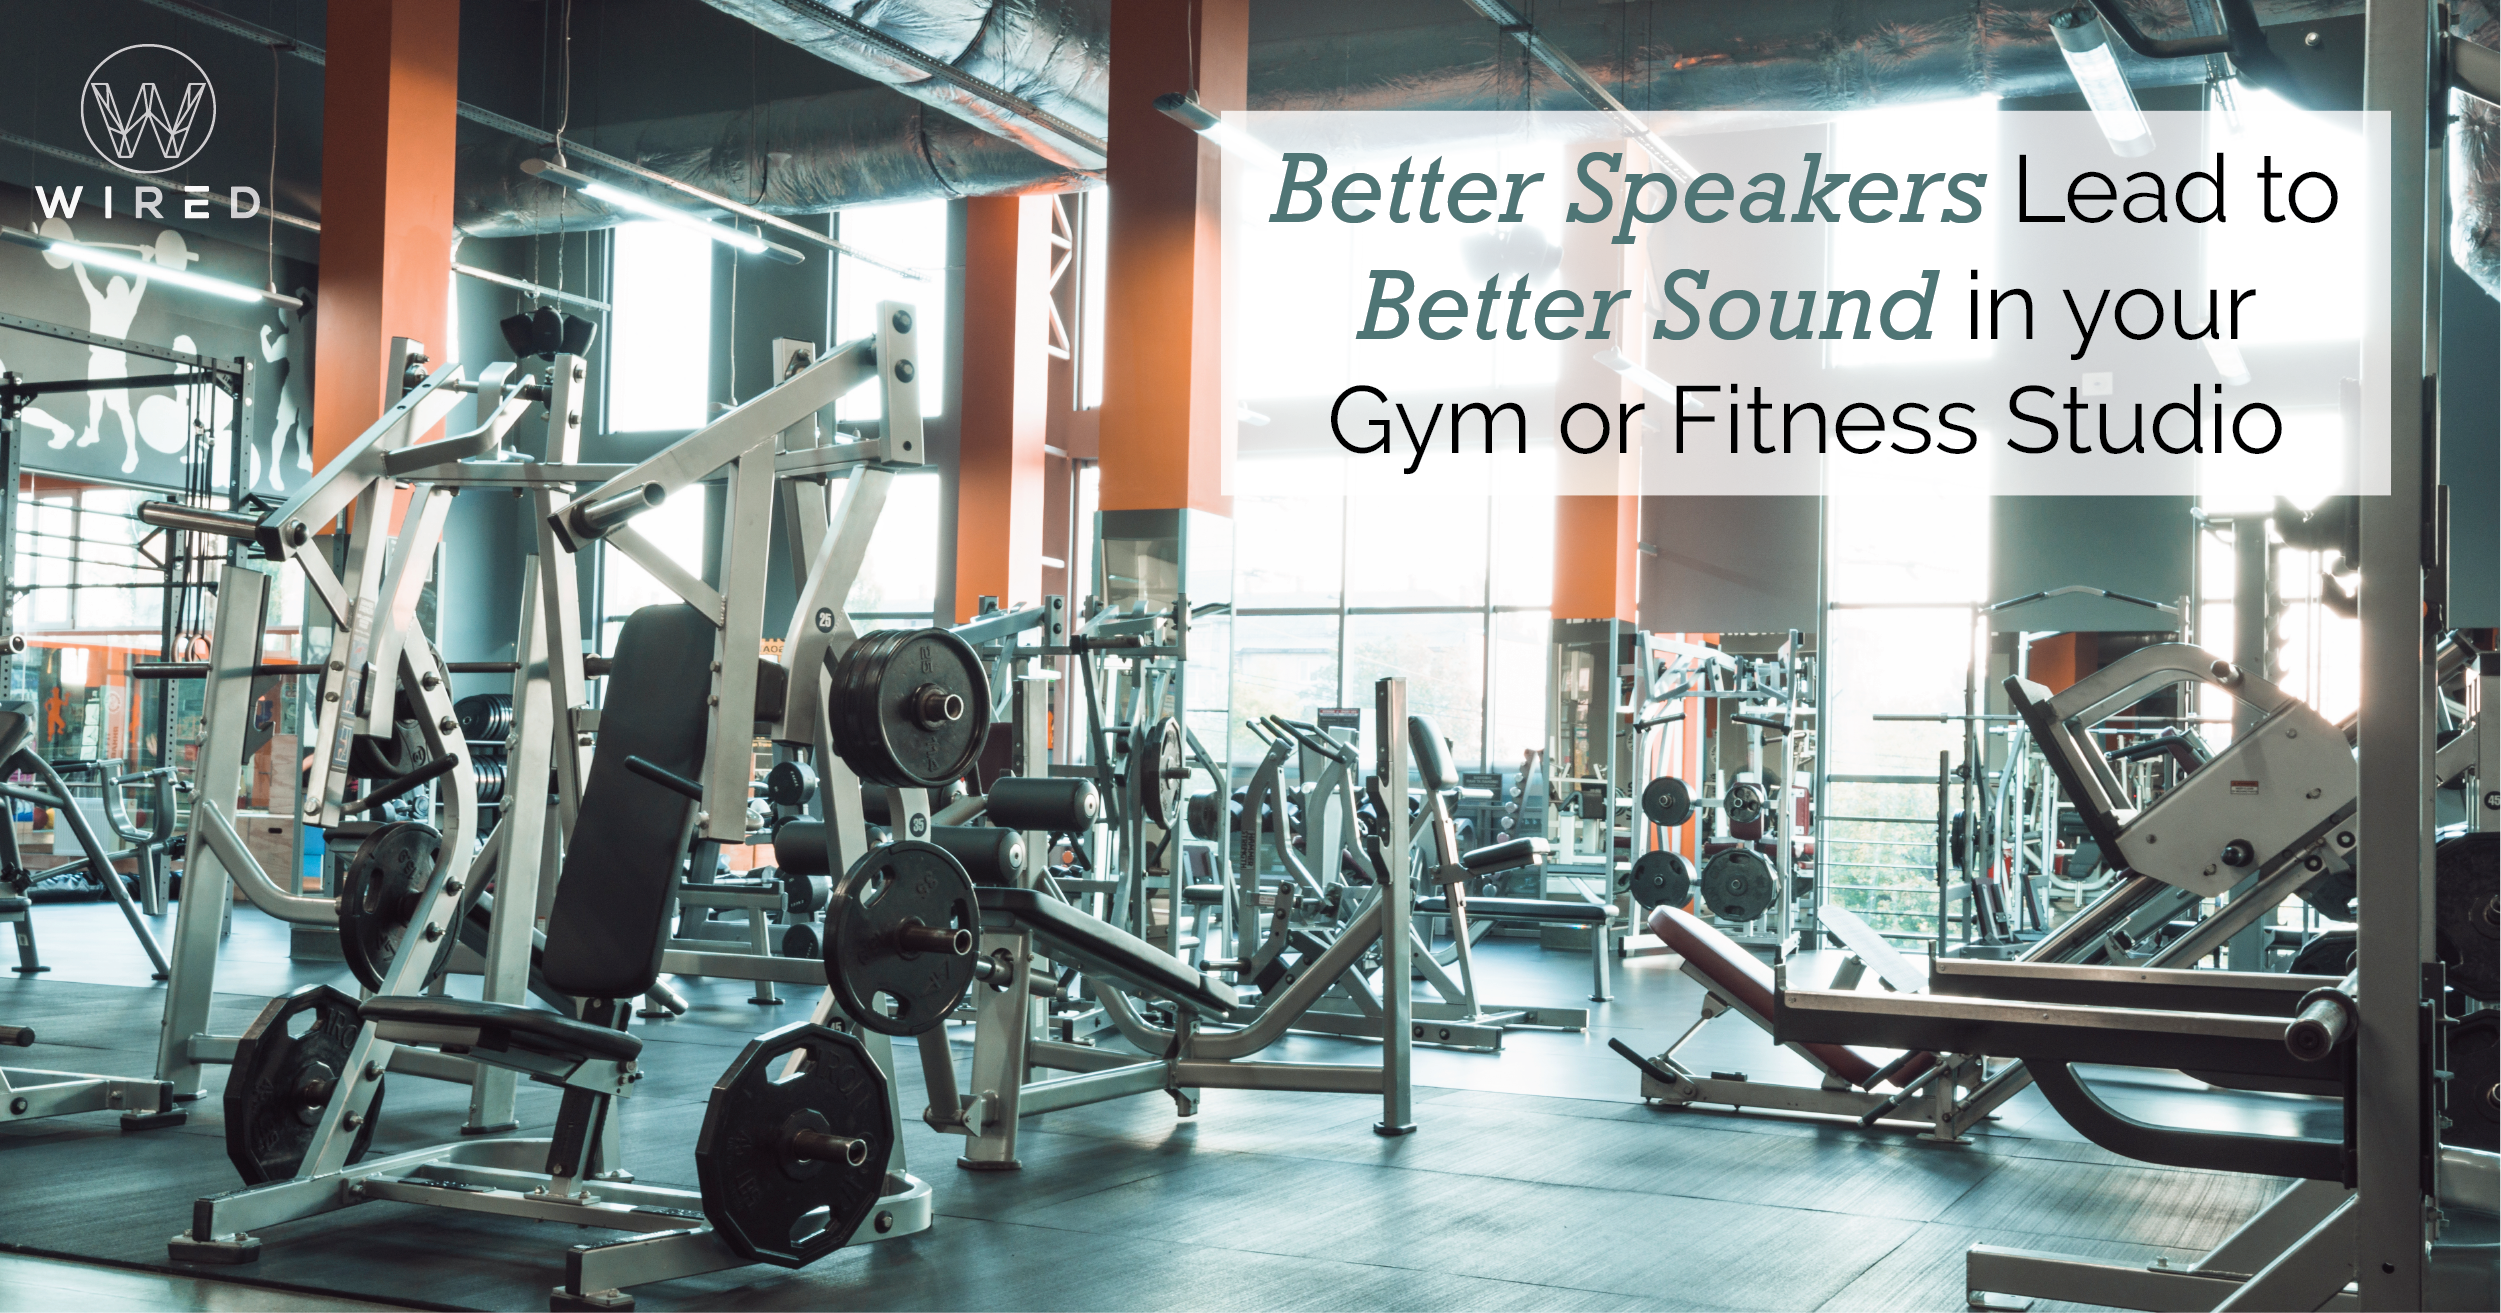 Better speakers lead to better sound in your gym or fitness studio